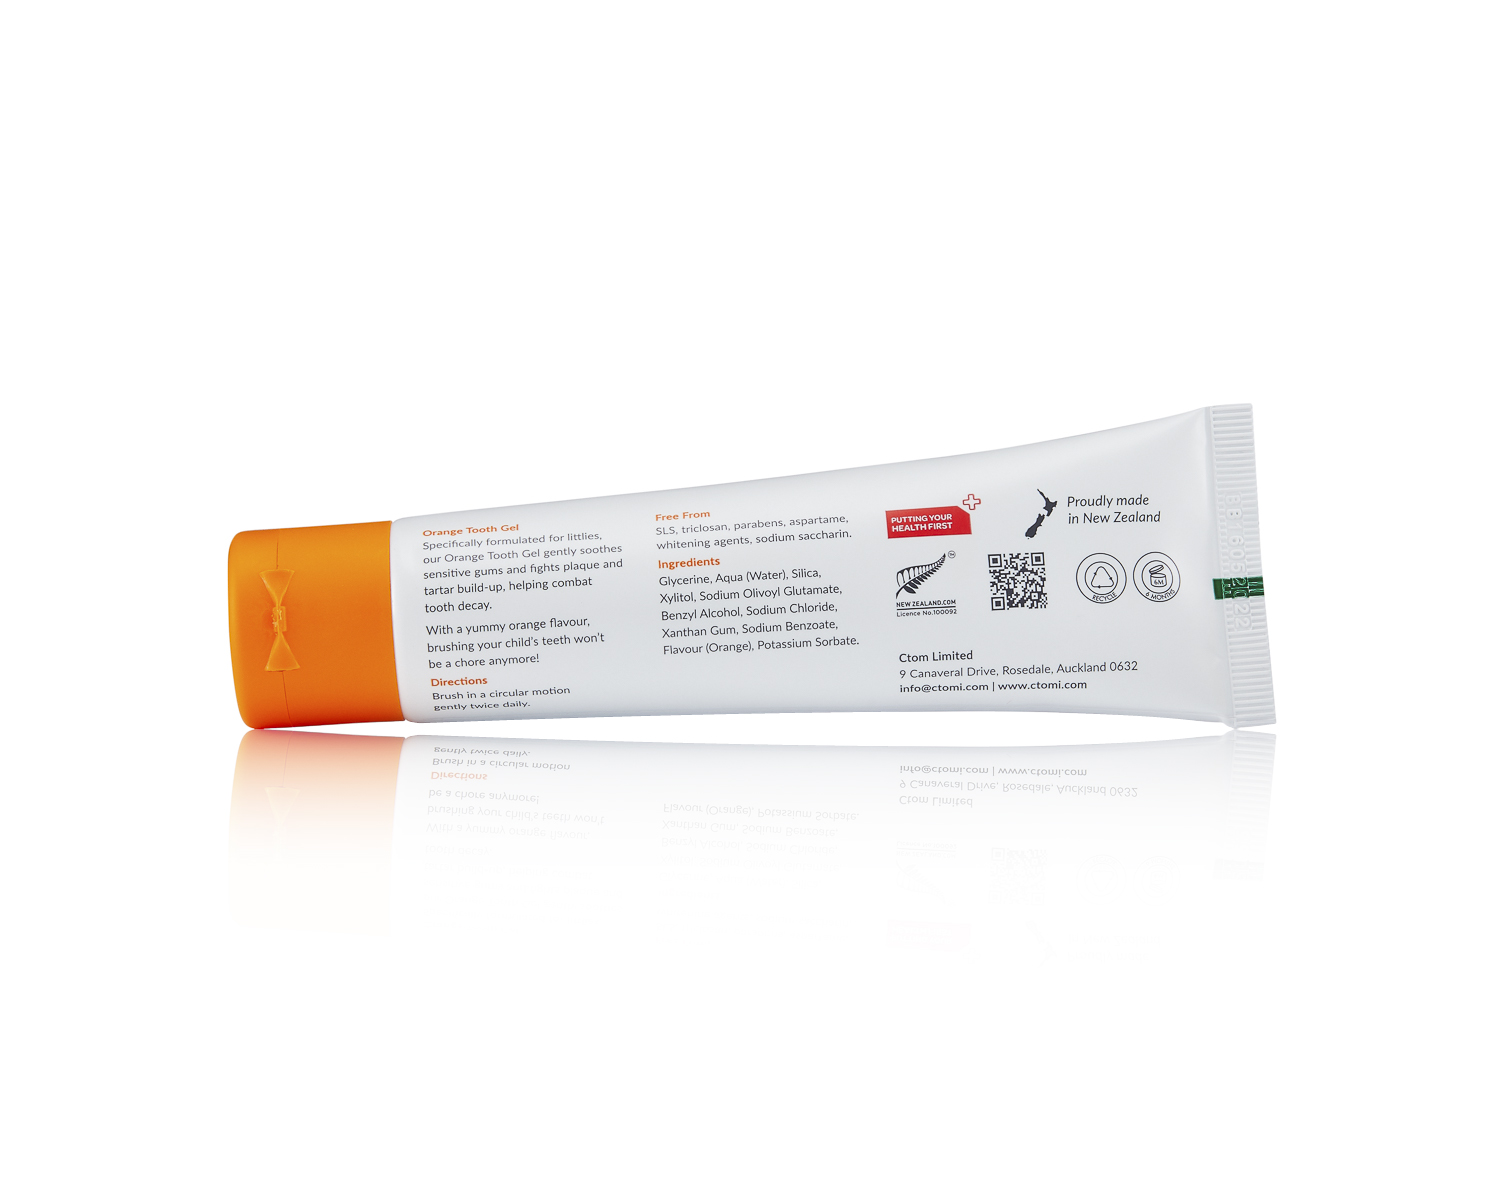 KIDS ORANGE TOOTH GEL